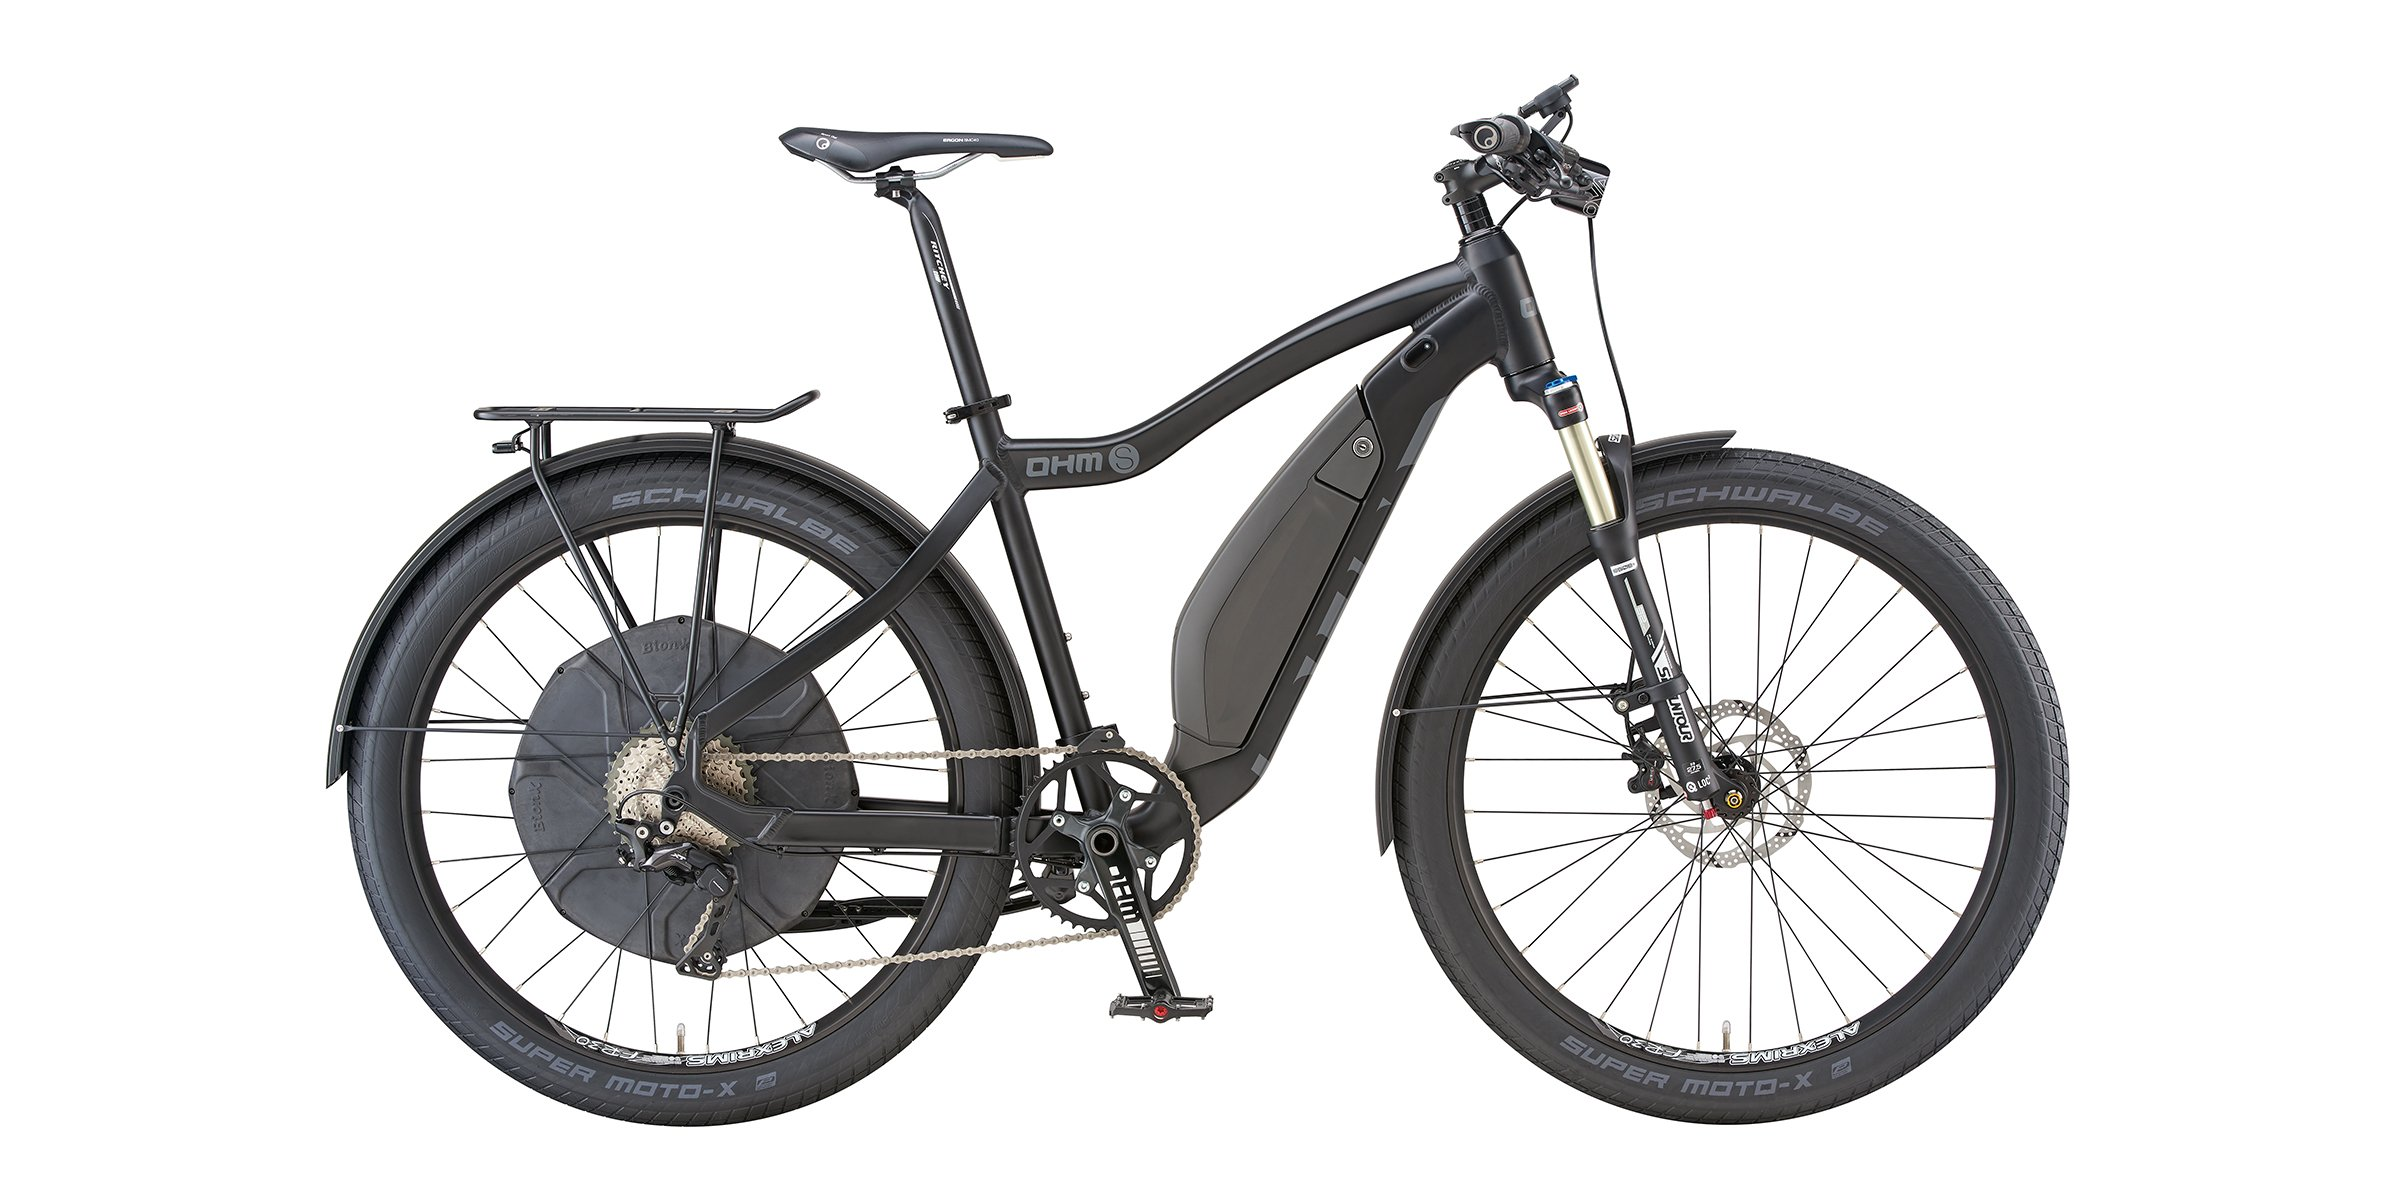 OHM Sport E-Bike Review